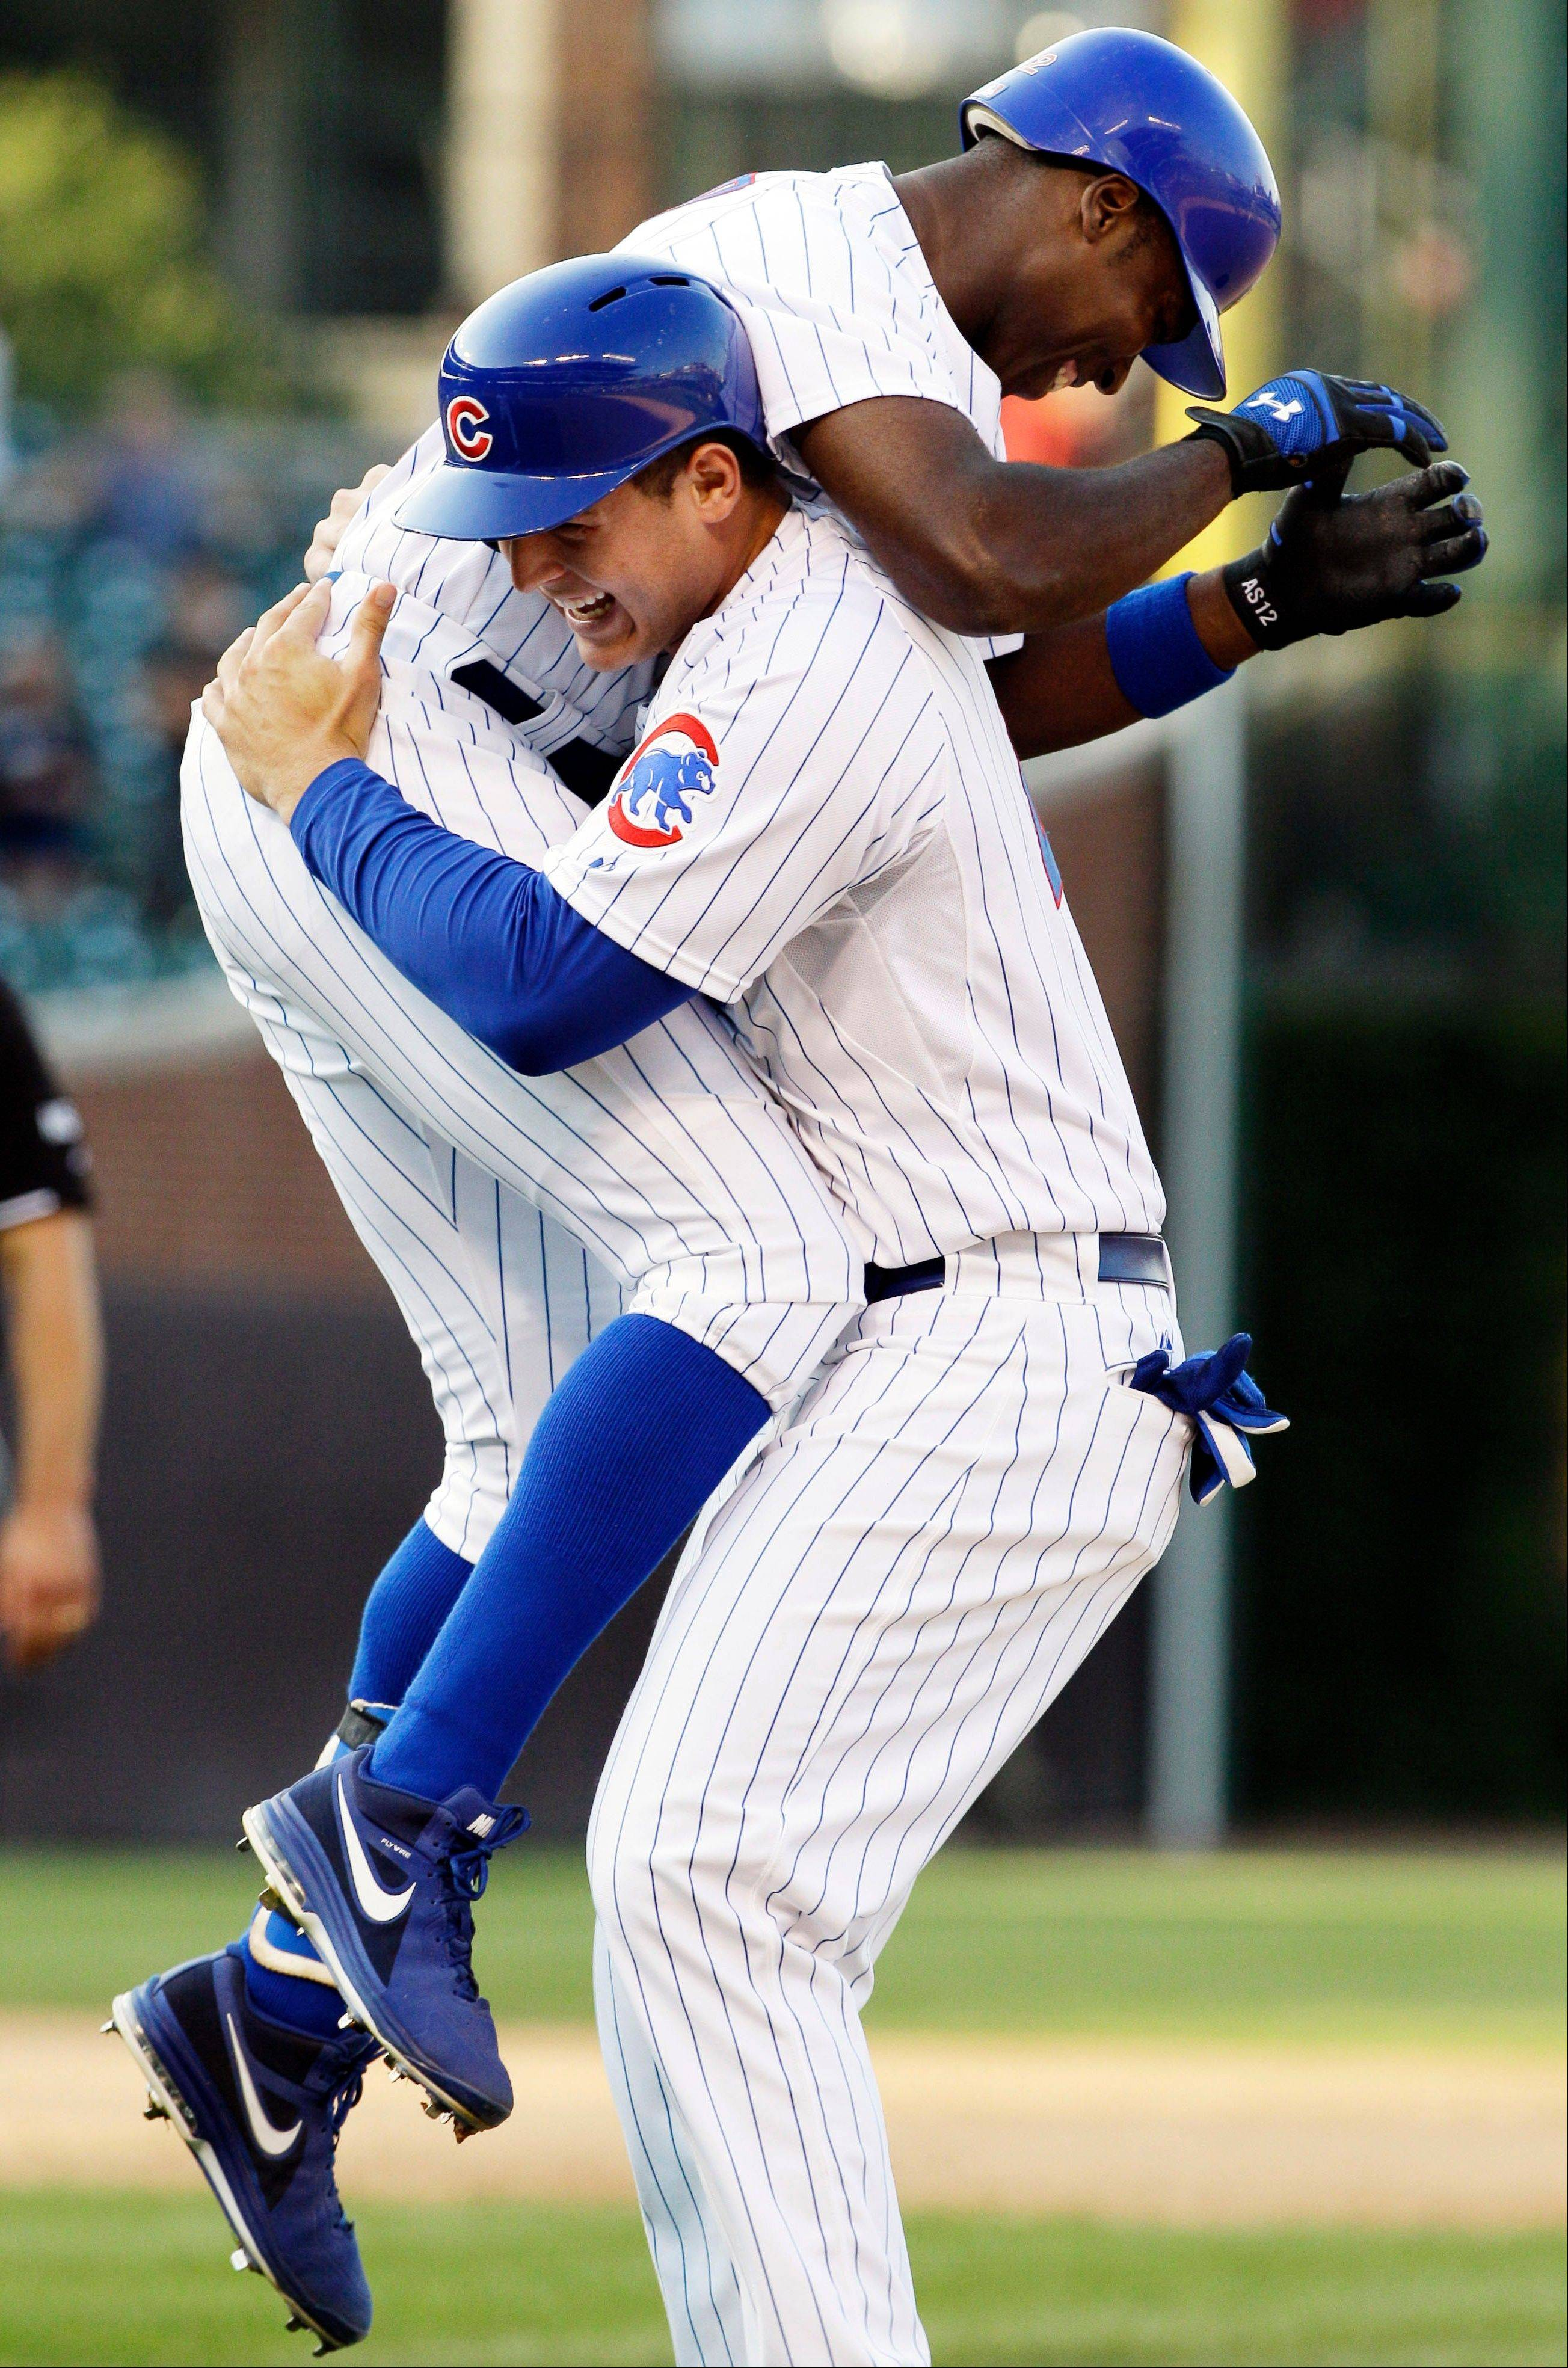 Chicago Cubs' Alfonso Soriano, top, celebrates with Anthony Rizzo after Soriano hit a game-winning RBI single to score Starlin Castro during the ninth inning of a baseball game against the Milwaukee Brewers in Chicago, Thursday, Aug. 30, 2012. The Cubs won 12-11.